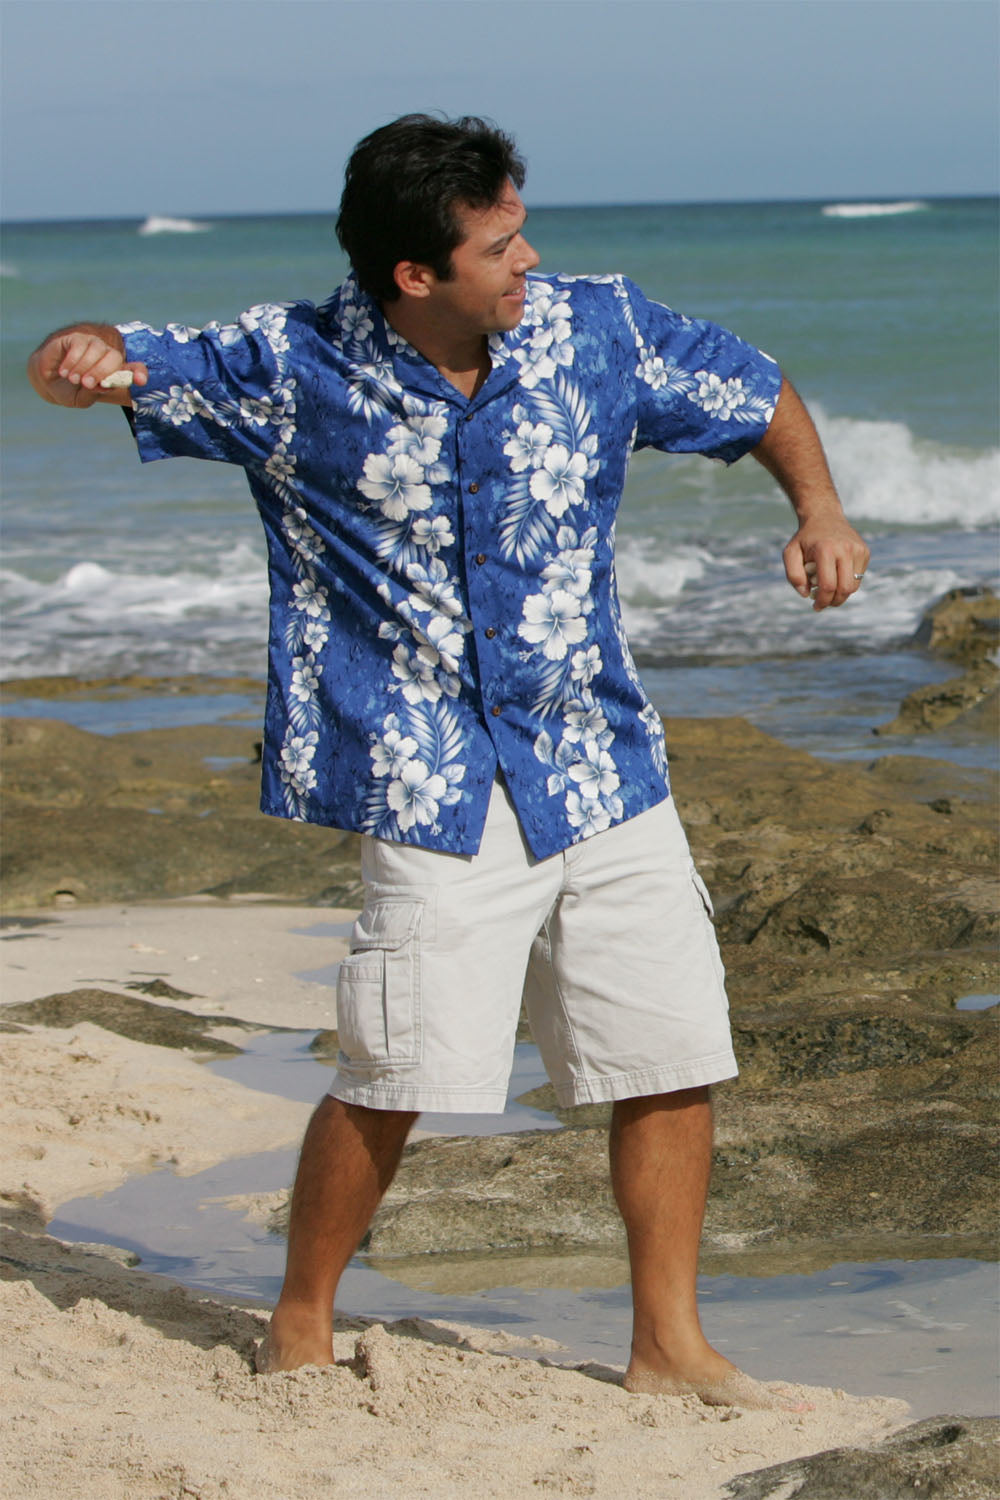 Dave rock skipping in 100% cotton Aloha shirt